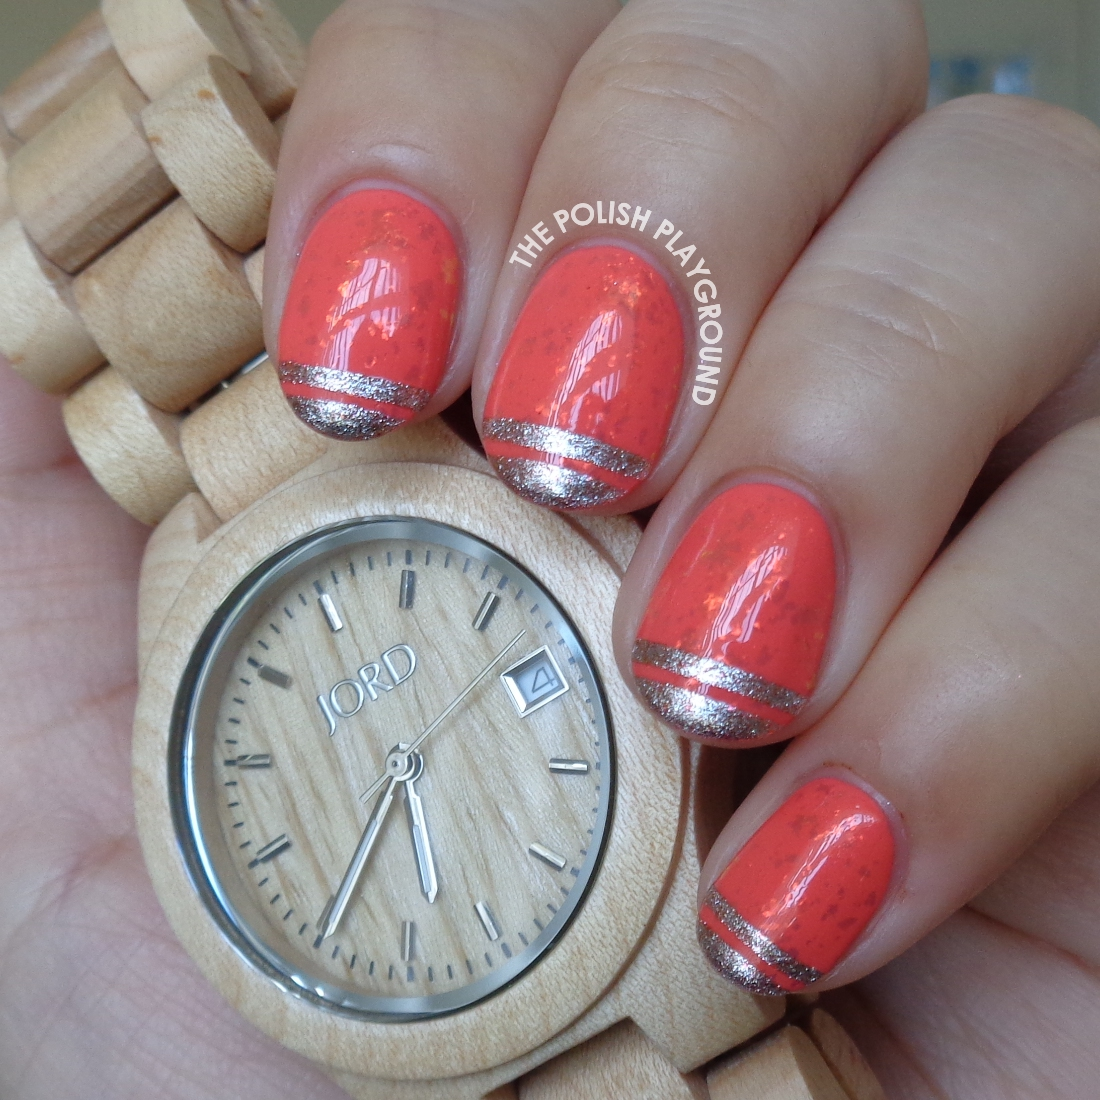 The Polish Playground: Jord Wood Watch Review and Nail Art